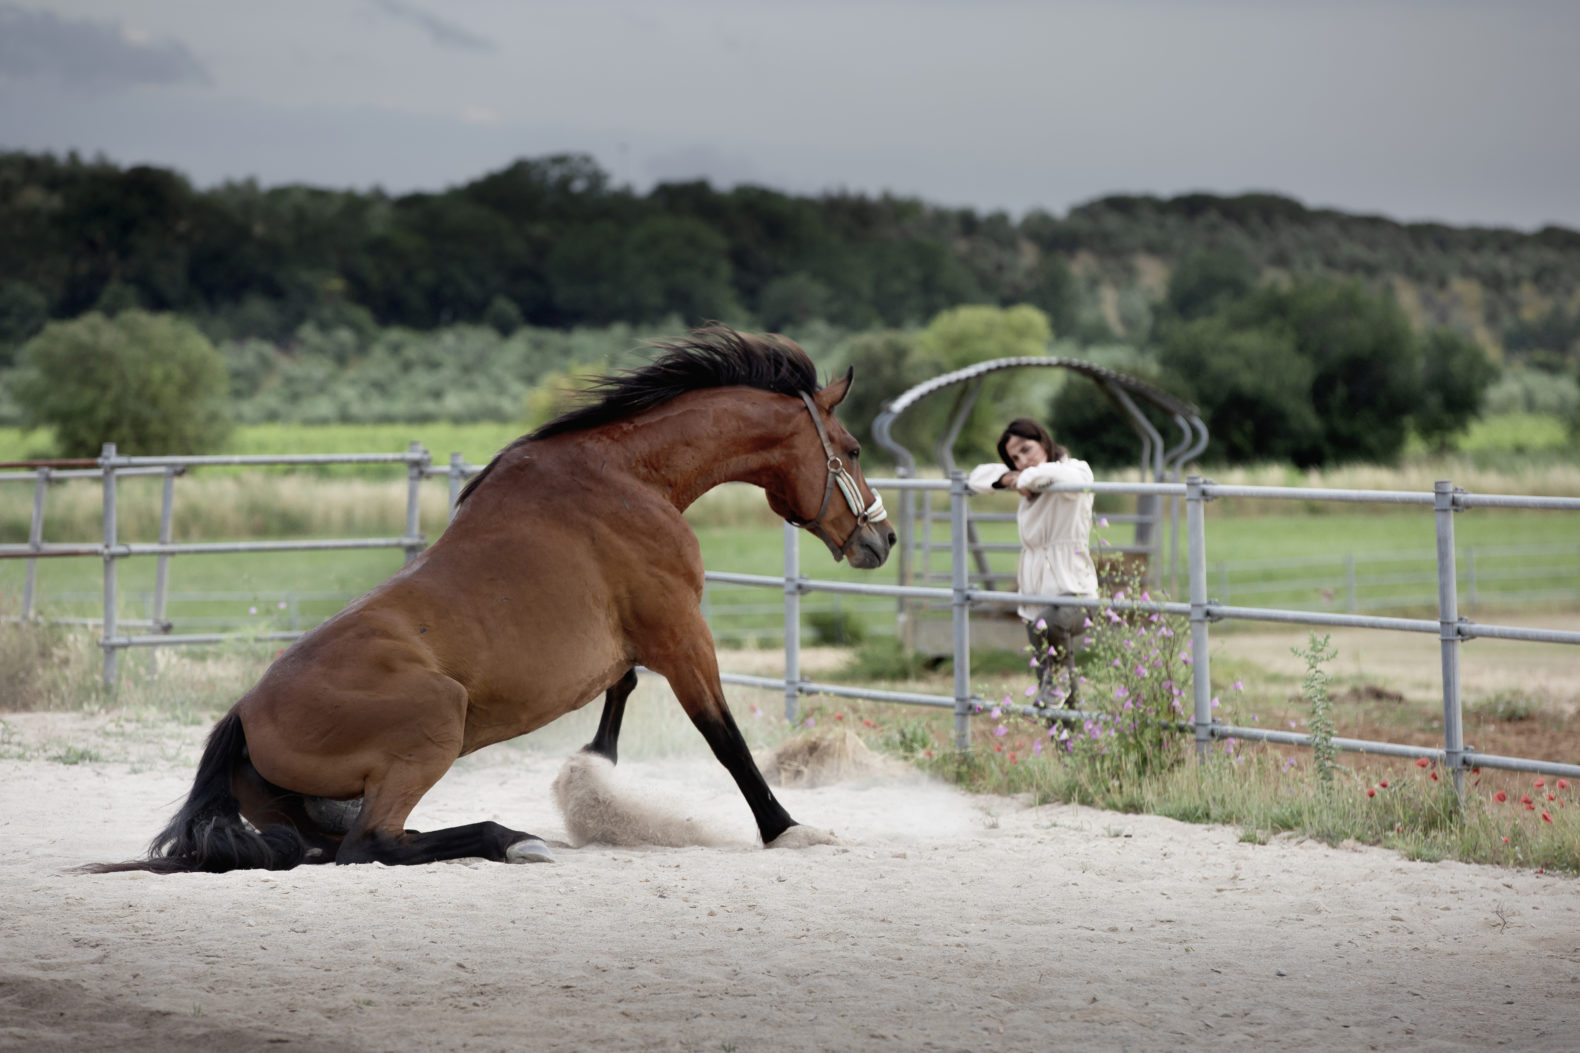 horse-therapy-equine-guided-education-healing-dojo-bianco-tuscany-italy